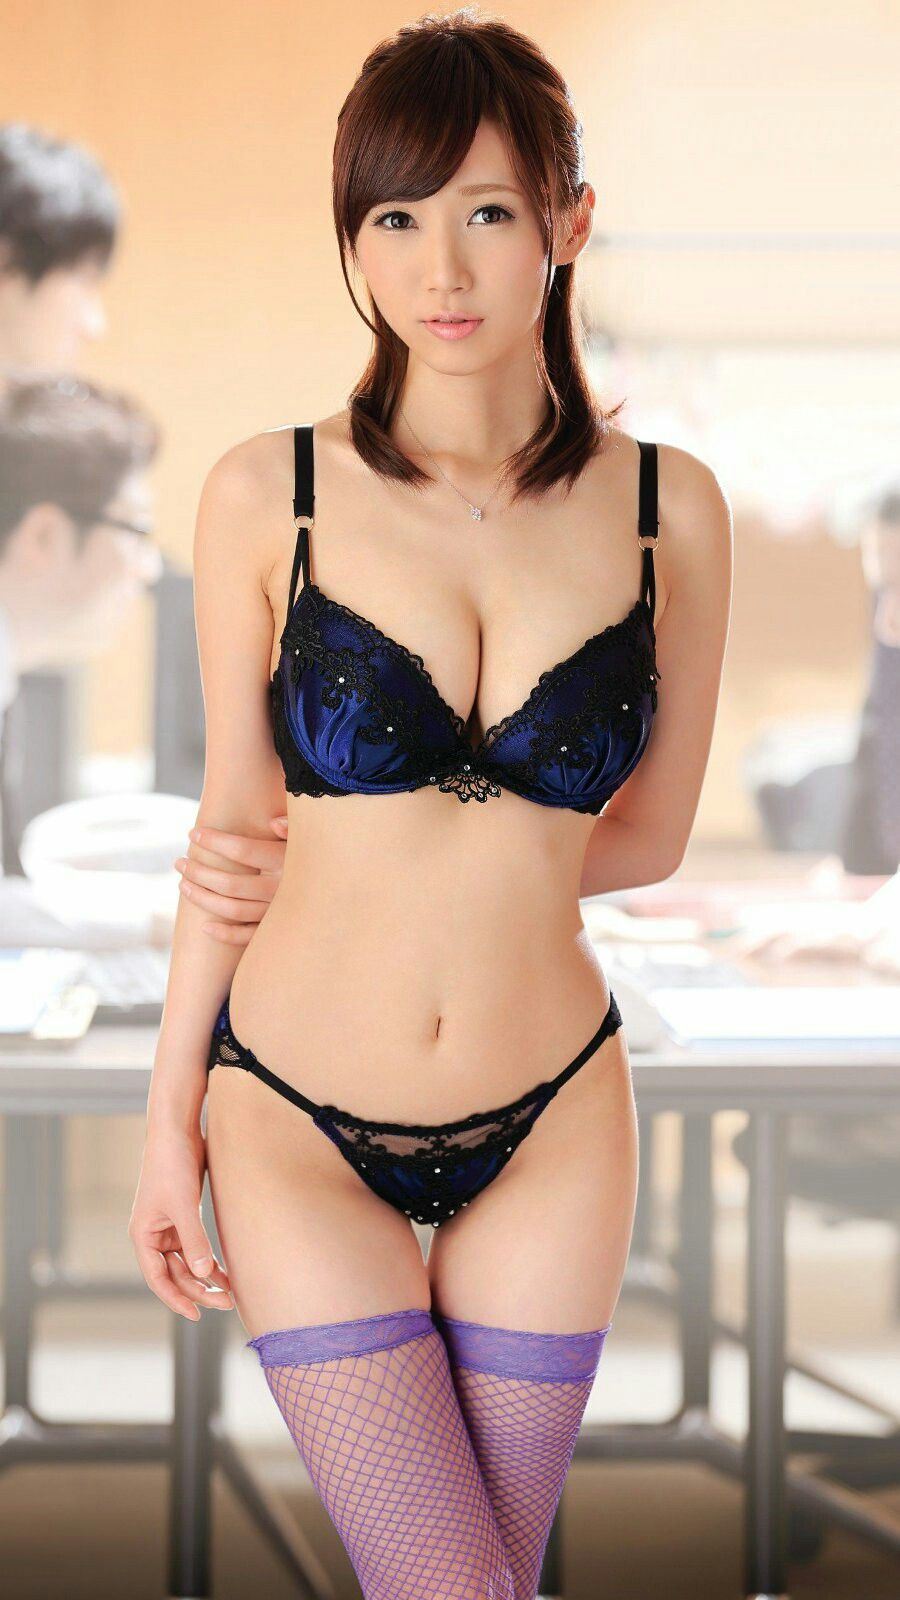 Asians in lingerie pics